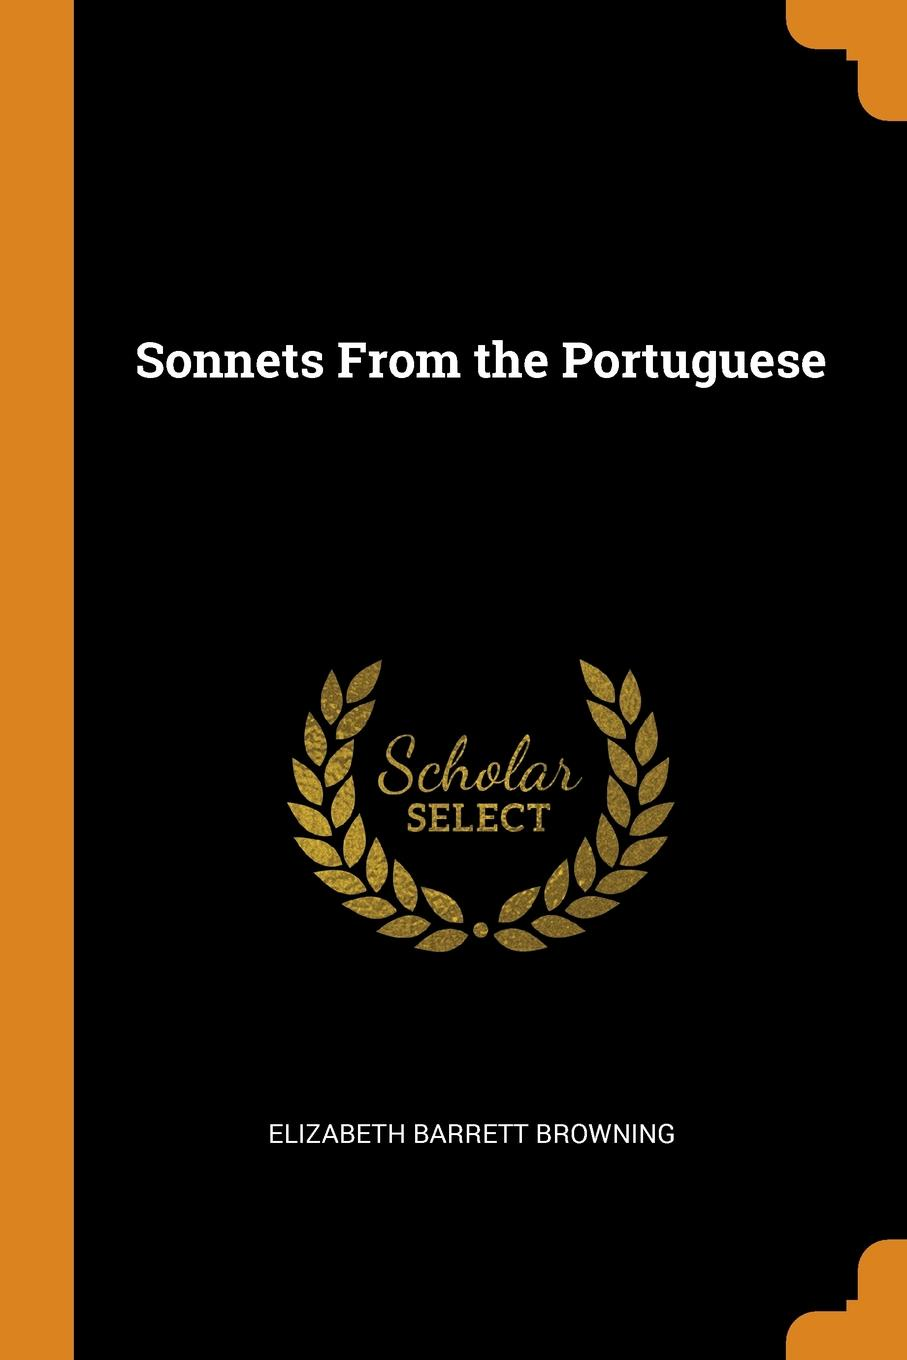 Elizabeth Barrett Browning Sonnets From the Portuguese